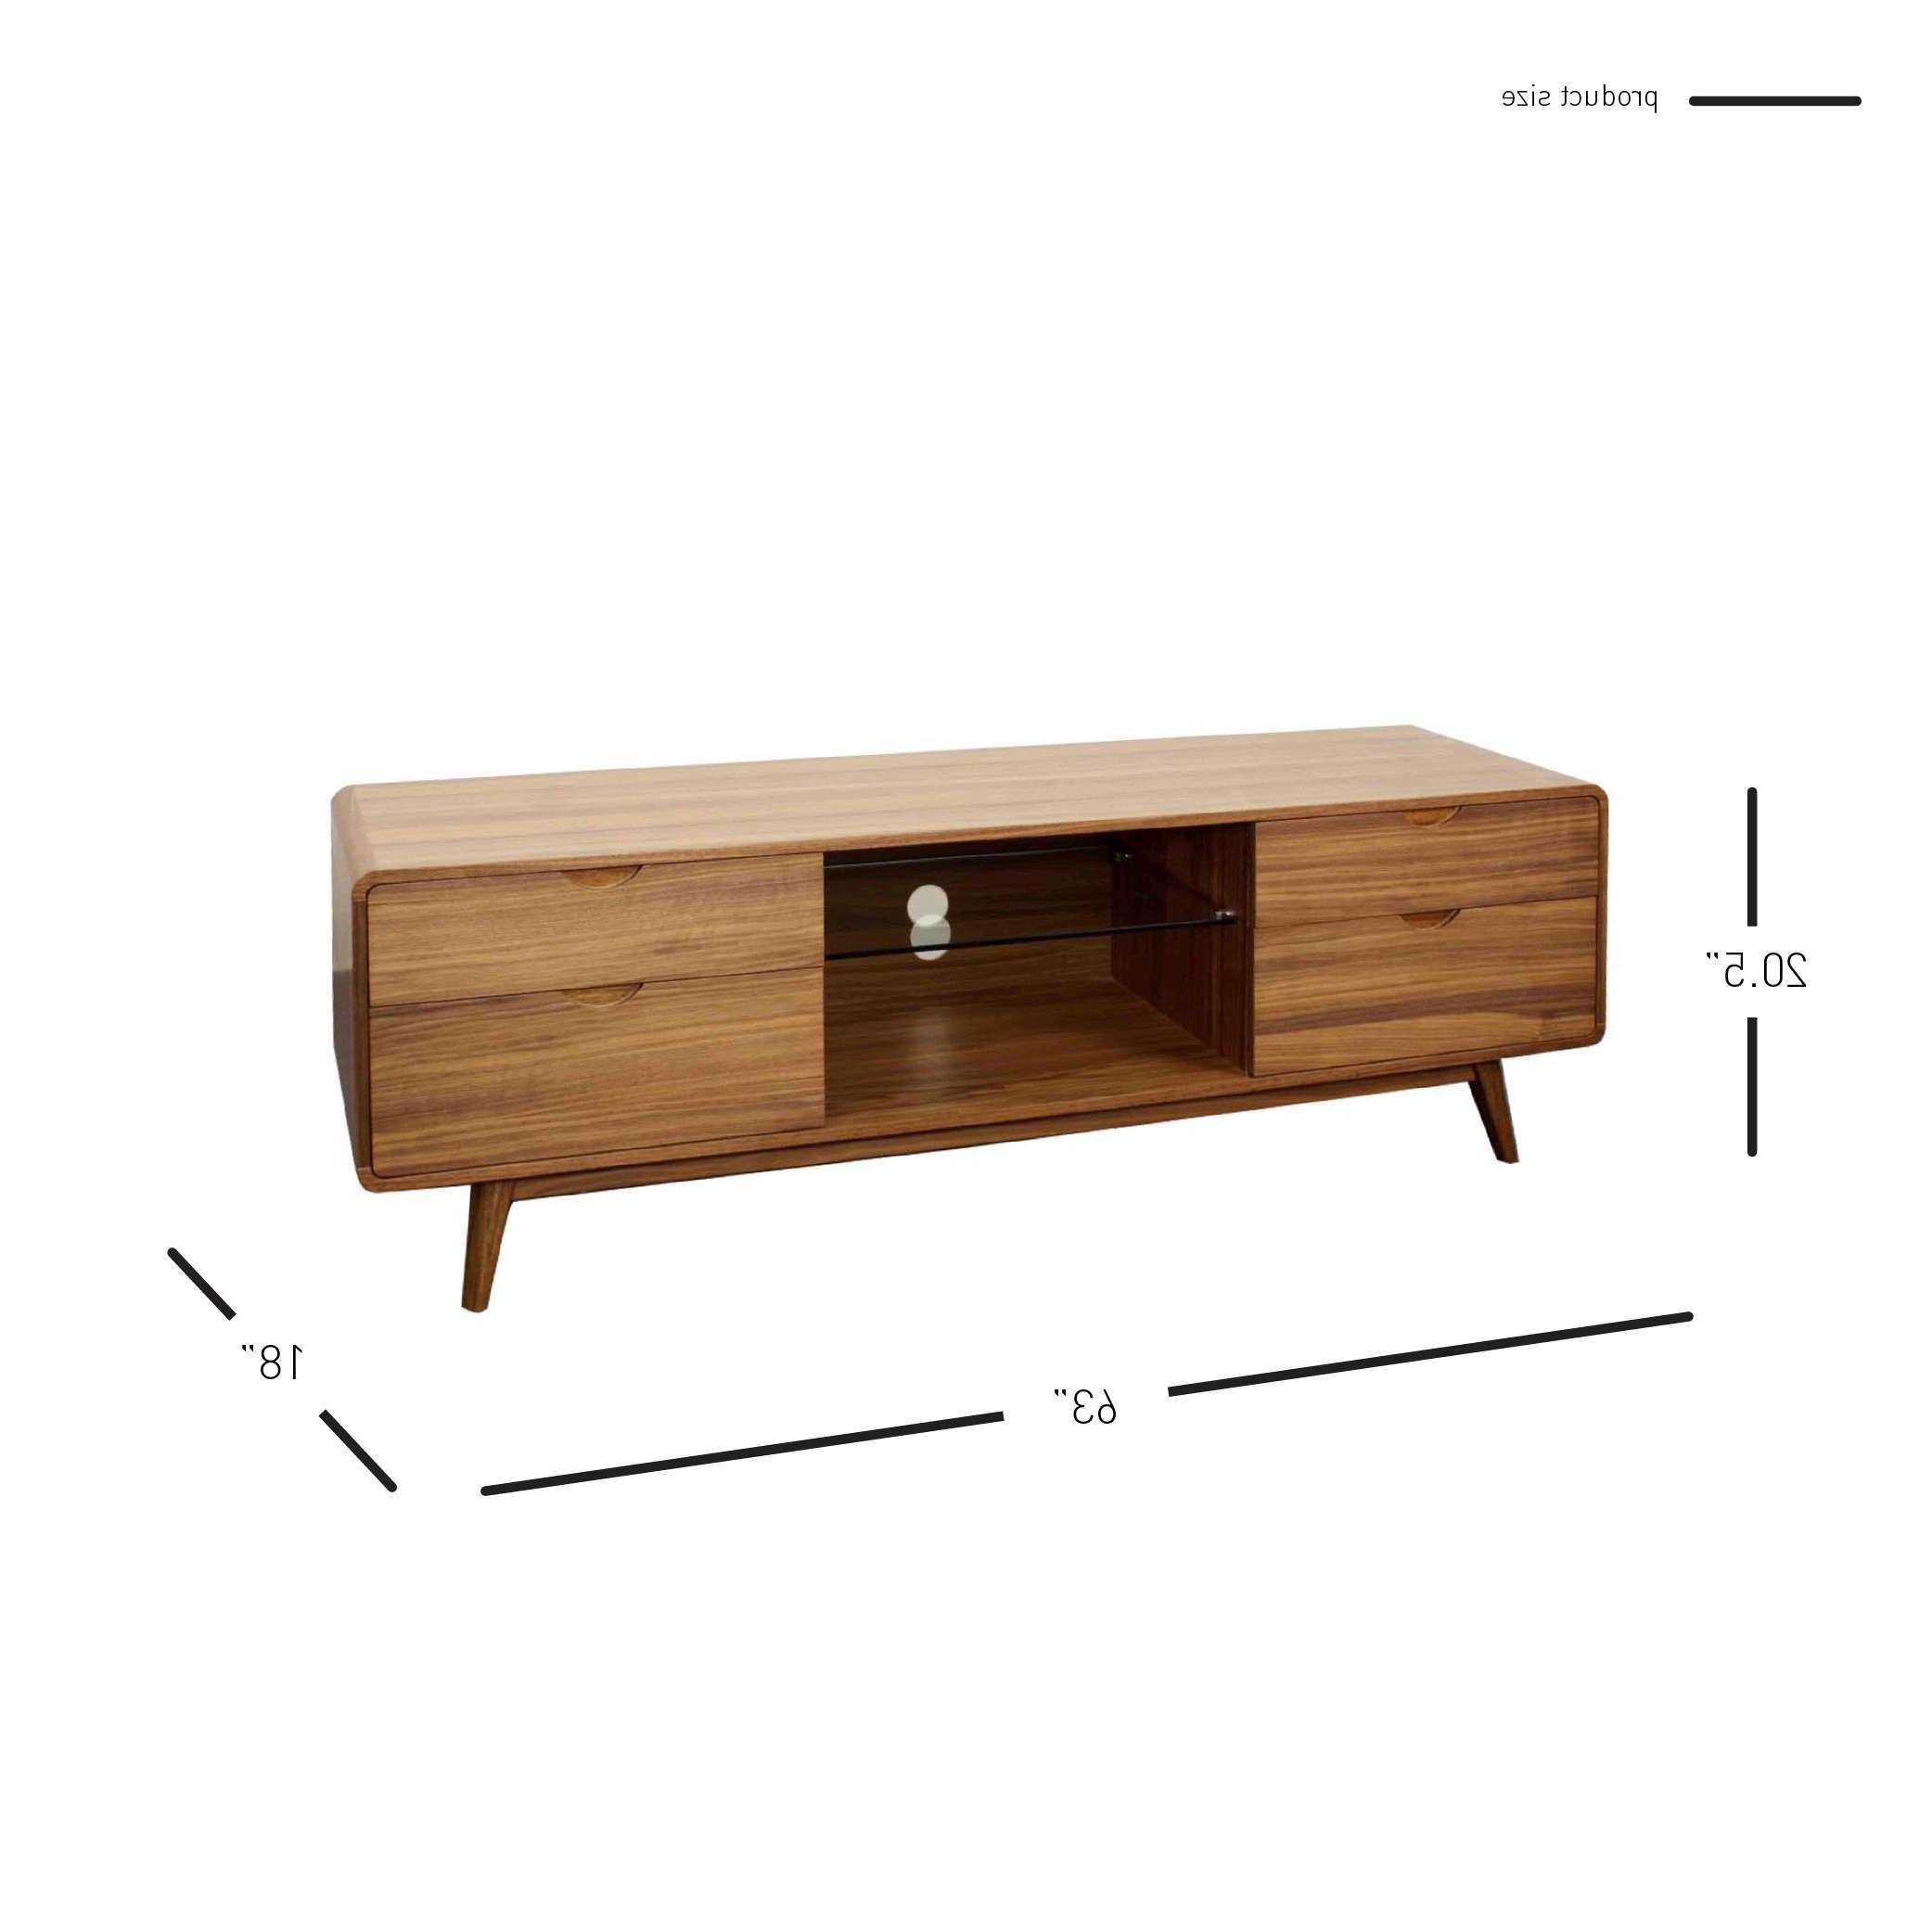 376063 – Npd Furniture | Stylish & Affordable Lifestyle Furniture Inside Milano Tv Stands (View 1 of 20)